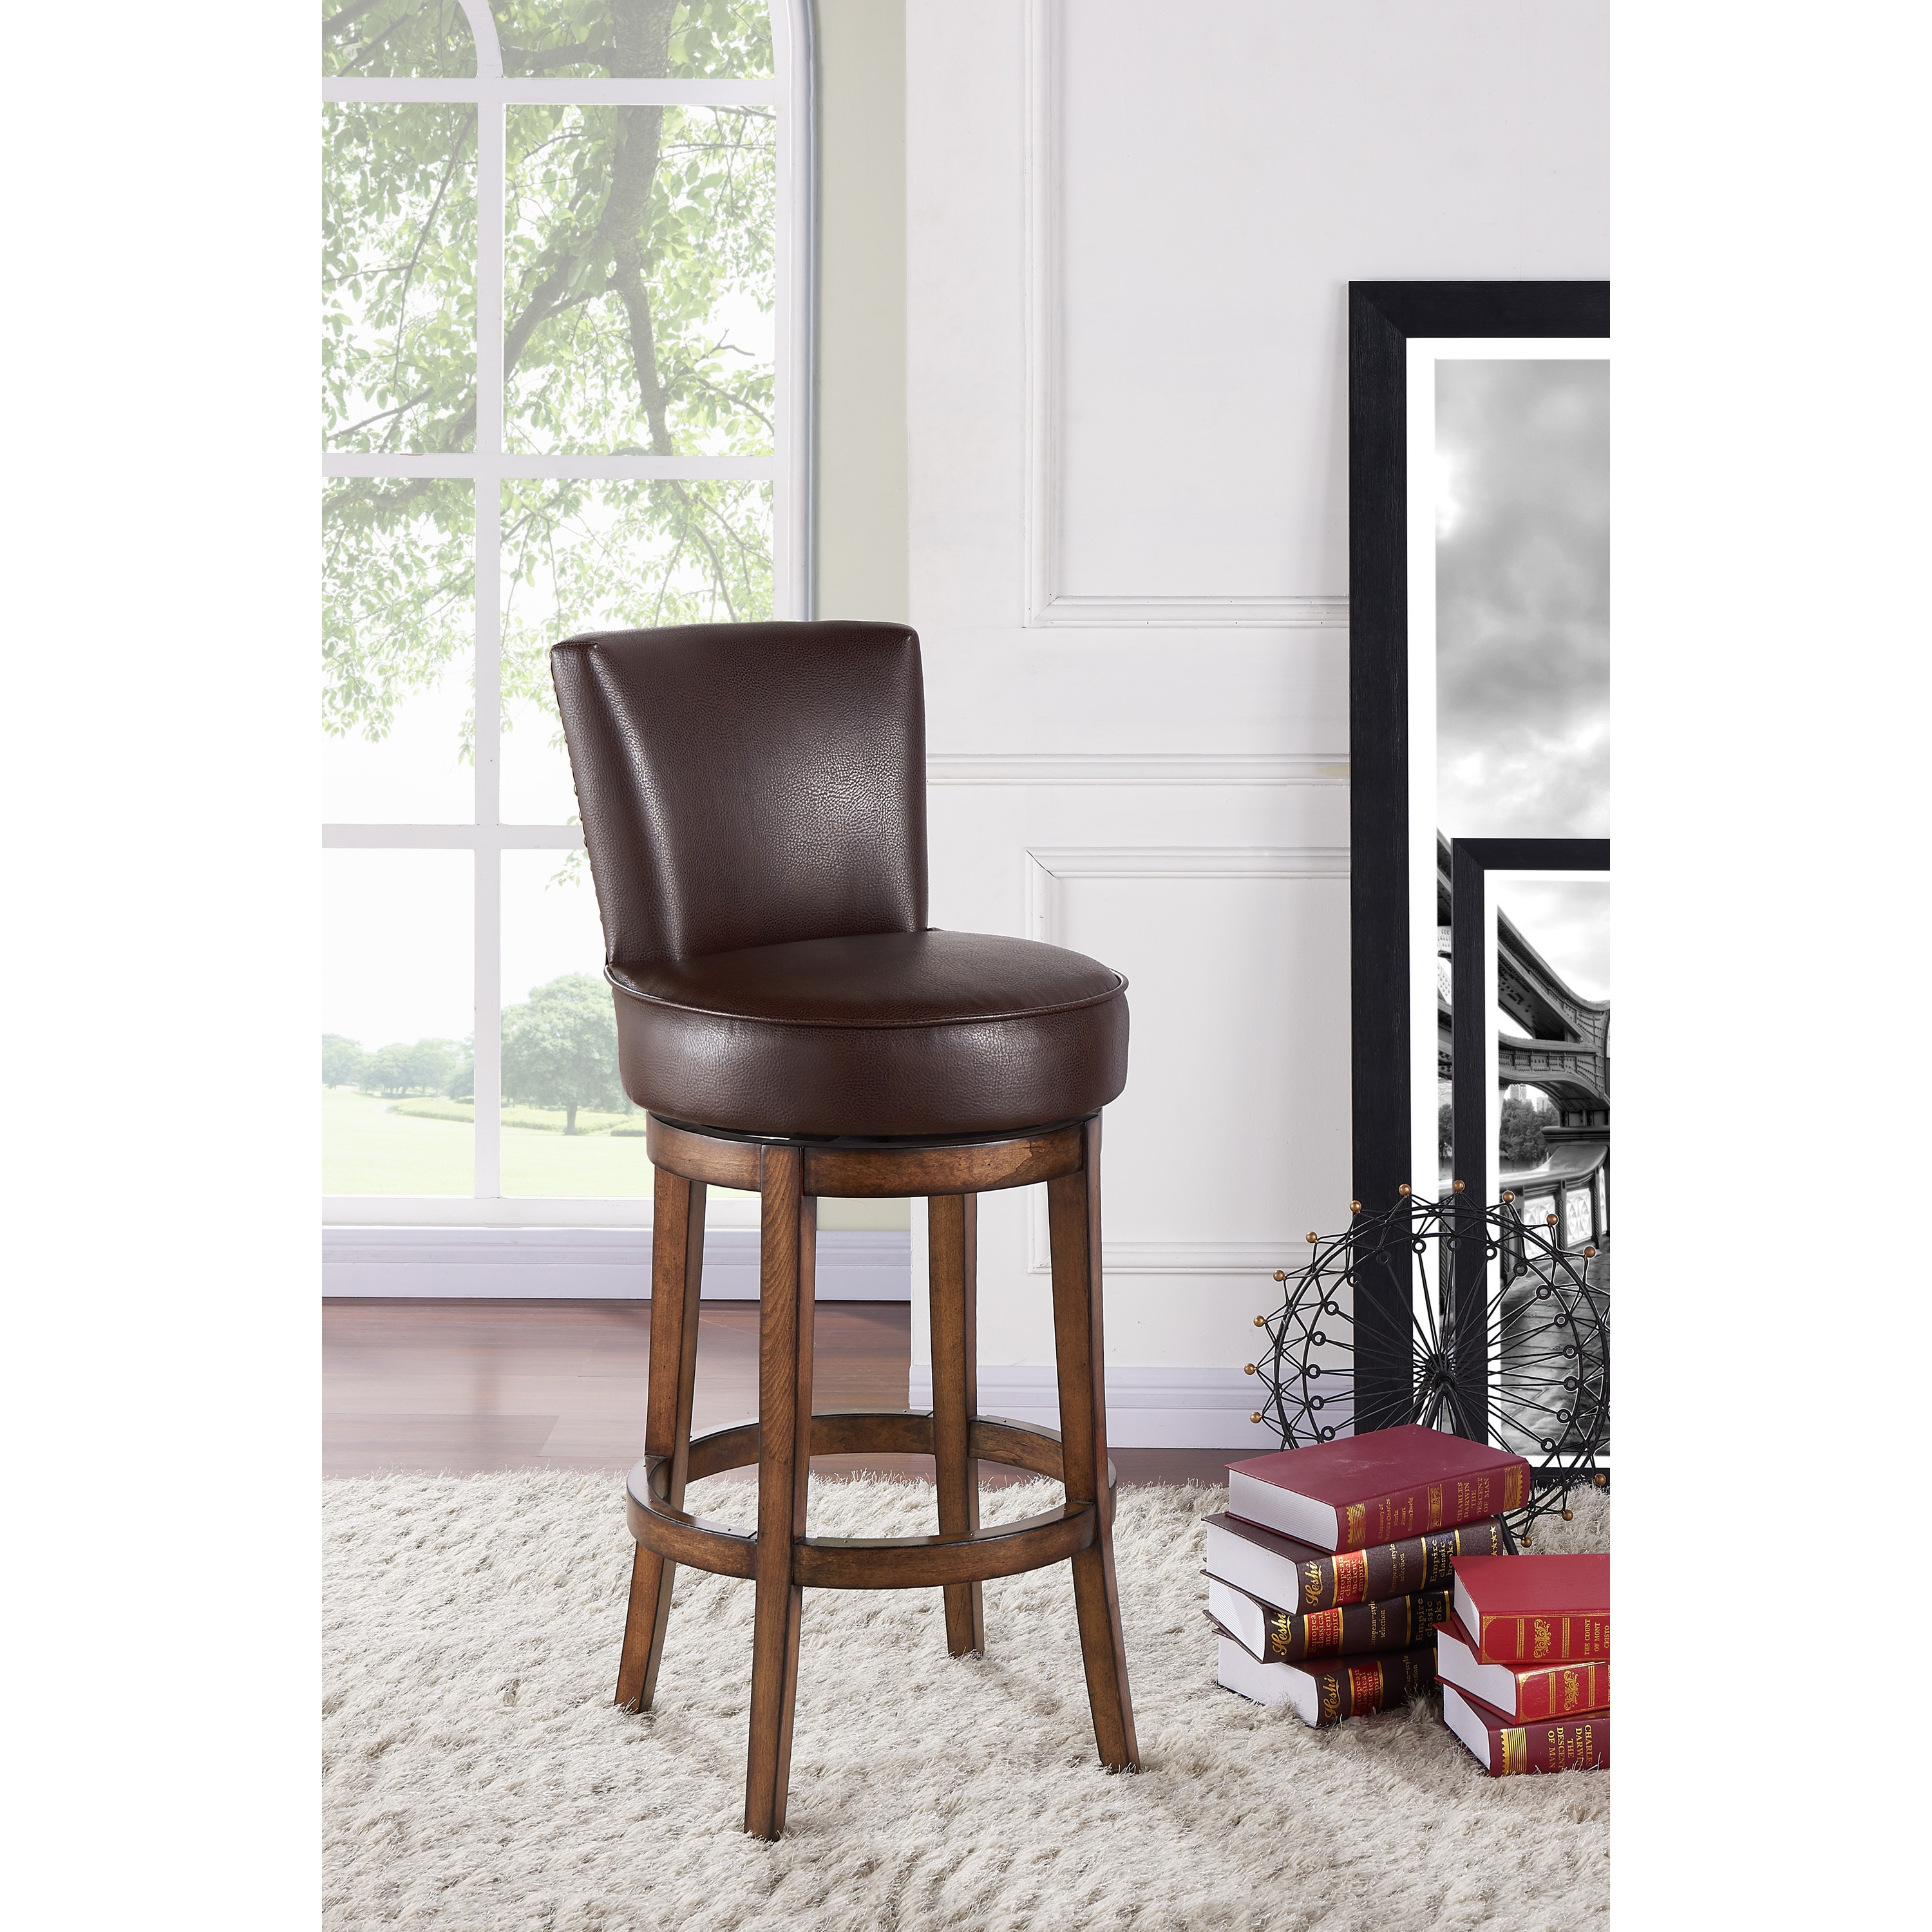 Armen Living Boston Brown Wood/Faux-leather Swivel Barstool (Bar Height - 29-32 in.)